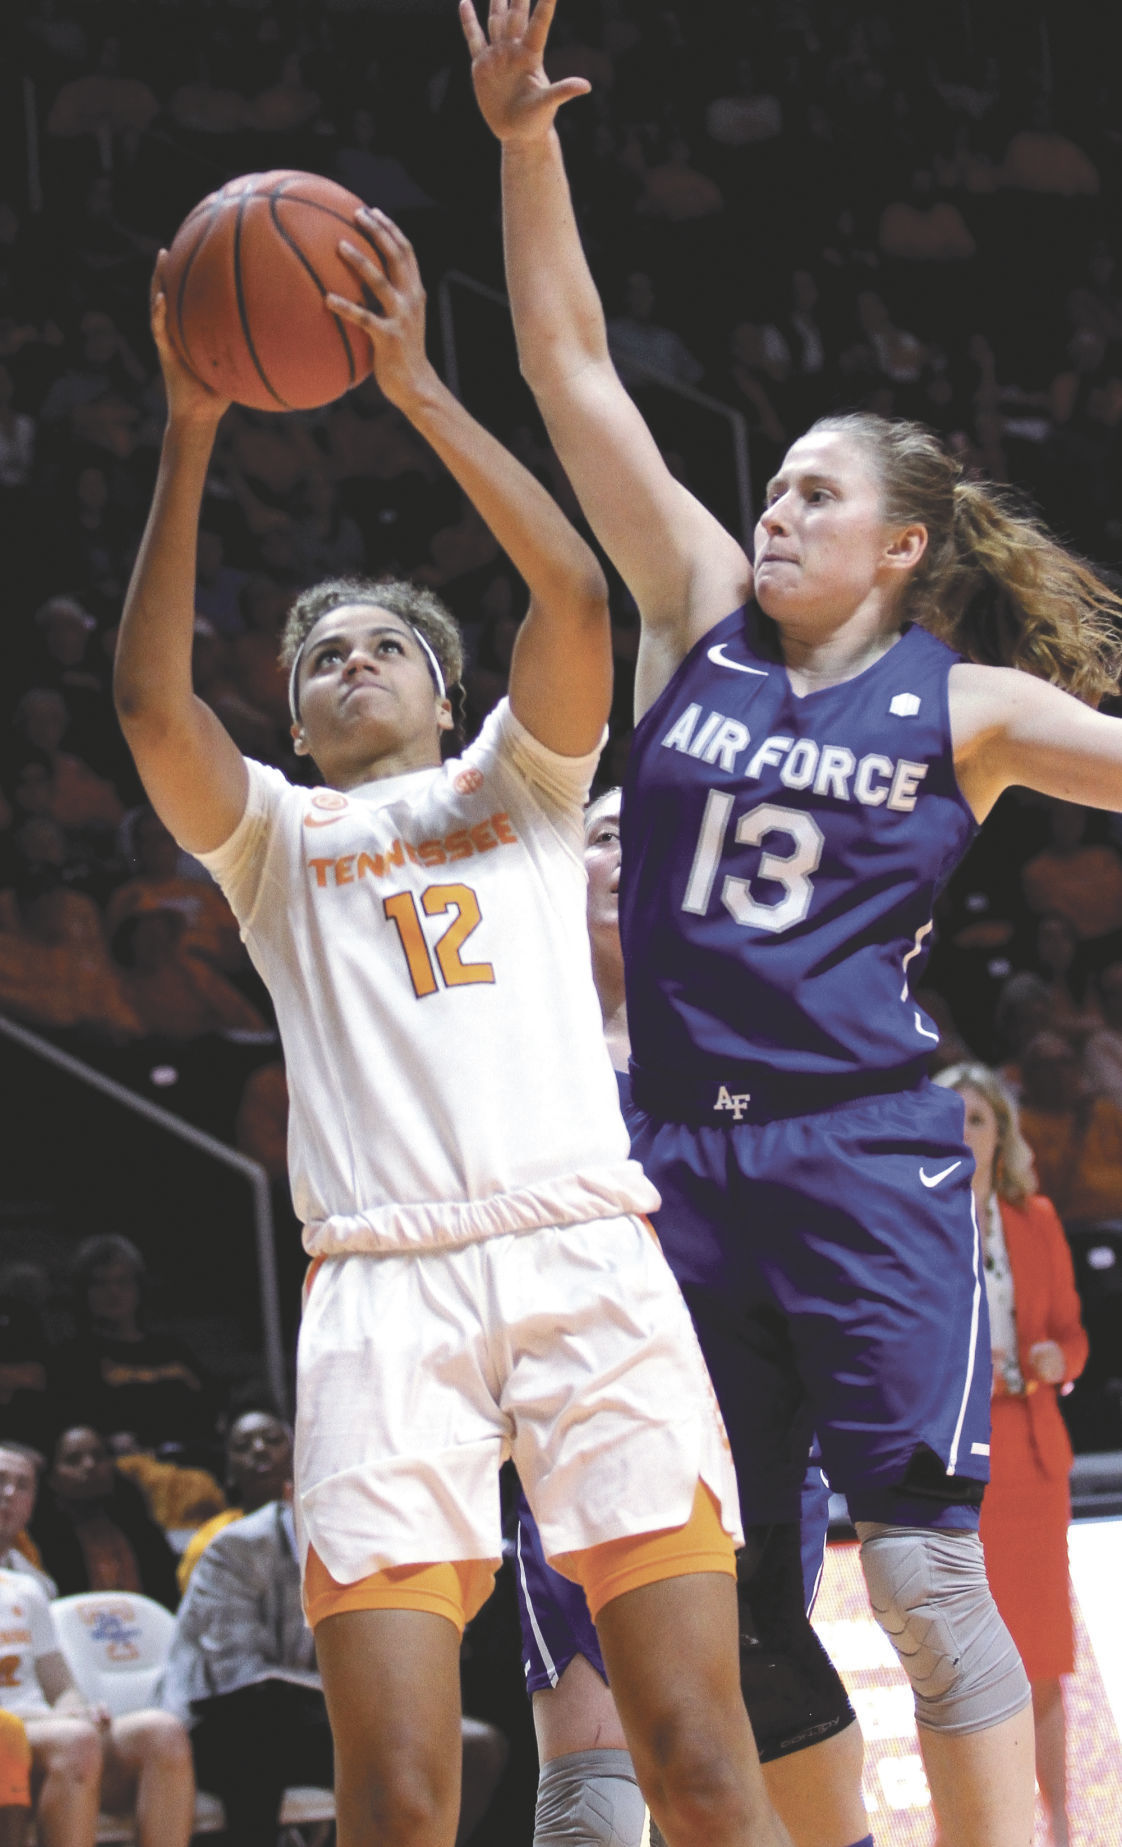 BASKETBALL: Tennessee's Rae Burrell vs. Air Force